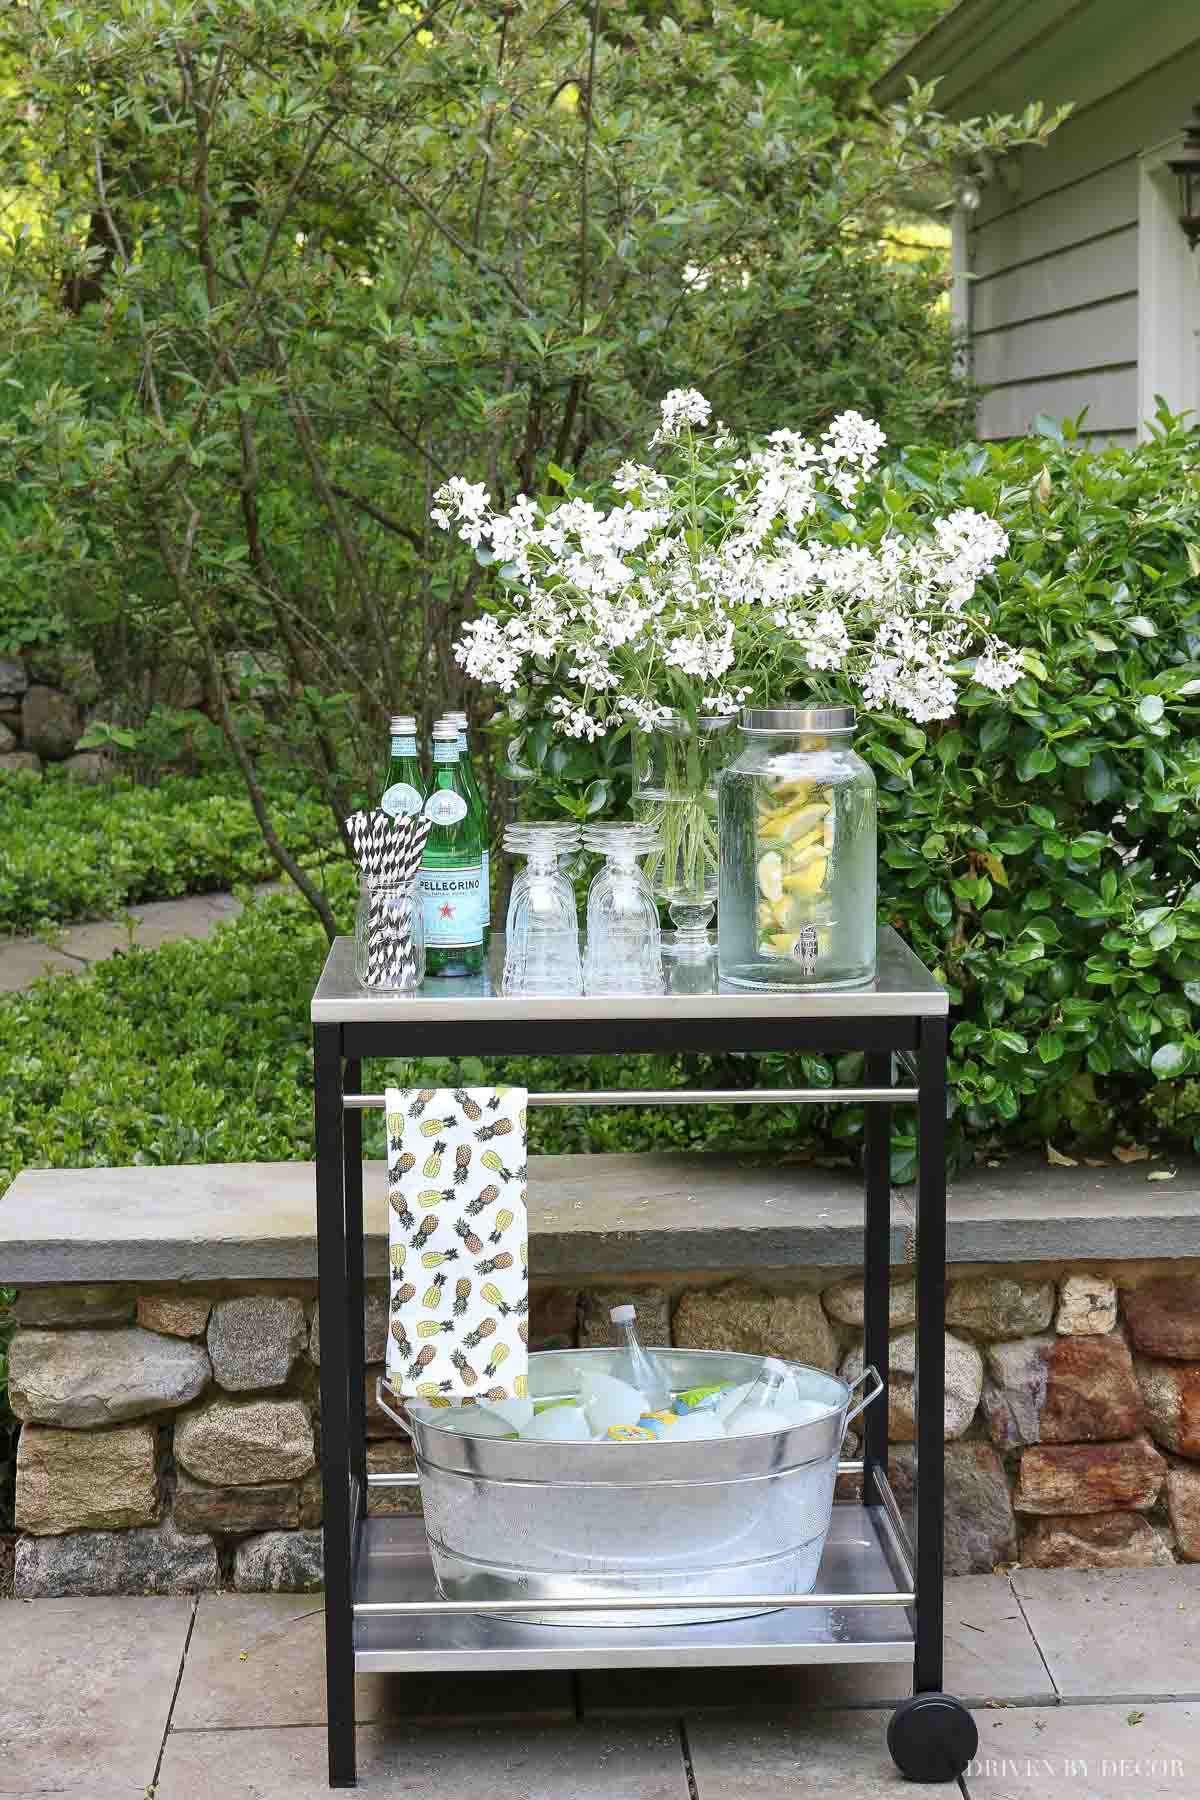 A bar cart for holding drinks while entertaining is one of my favorite outdoor decor ideas!